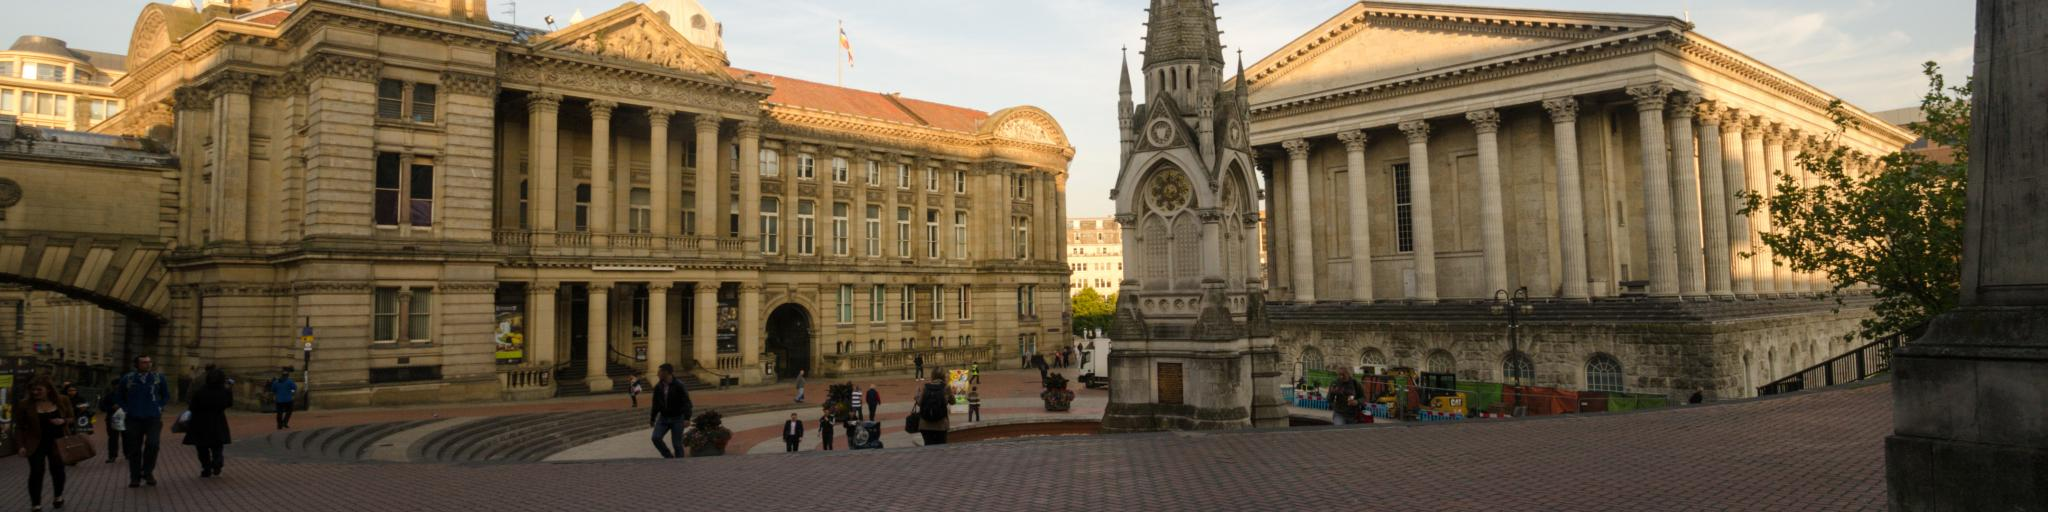 Town Hall and the Museum & Art Gallery are the main features of Chamberlain Square in Birmingham